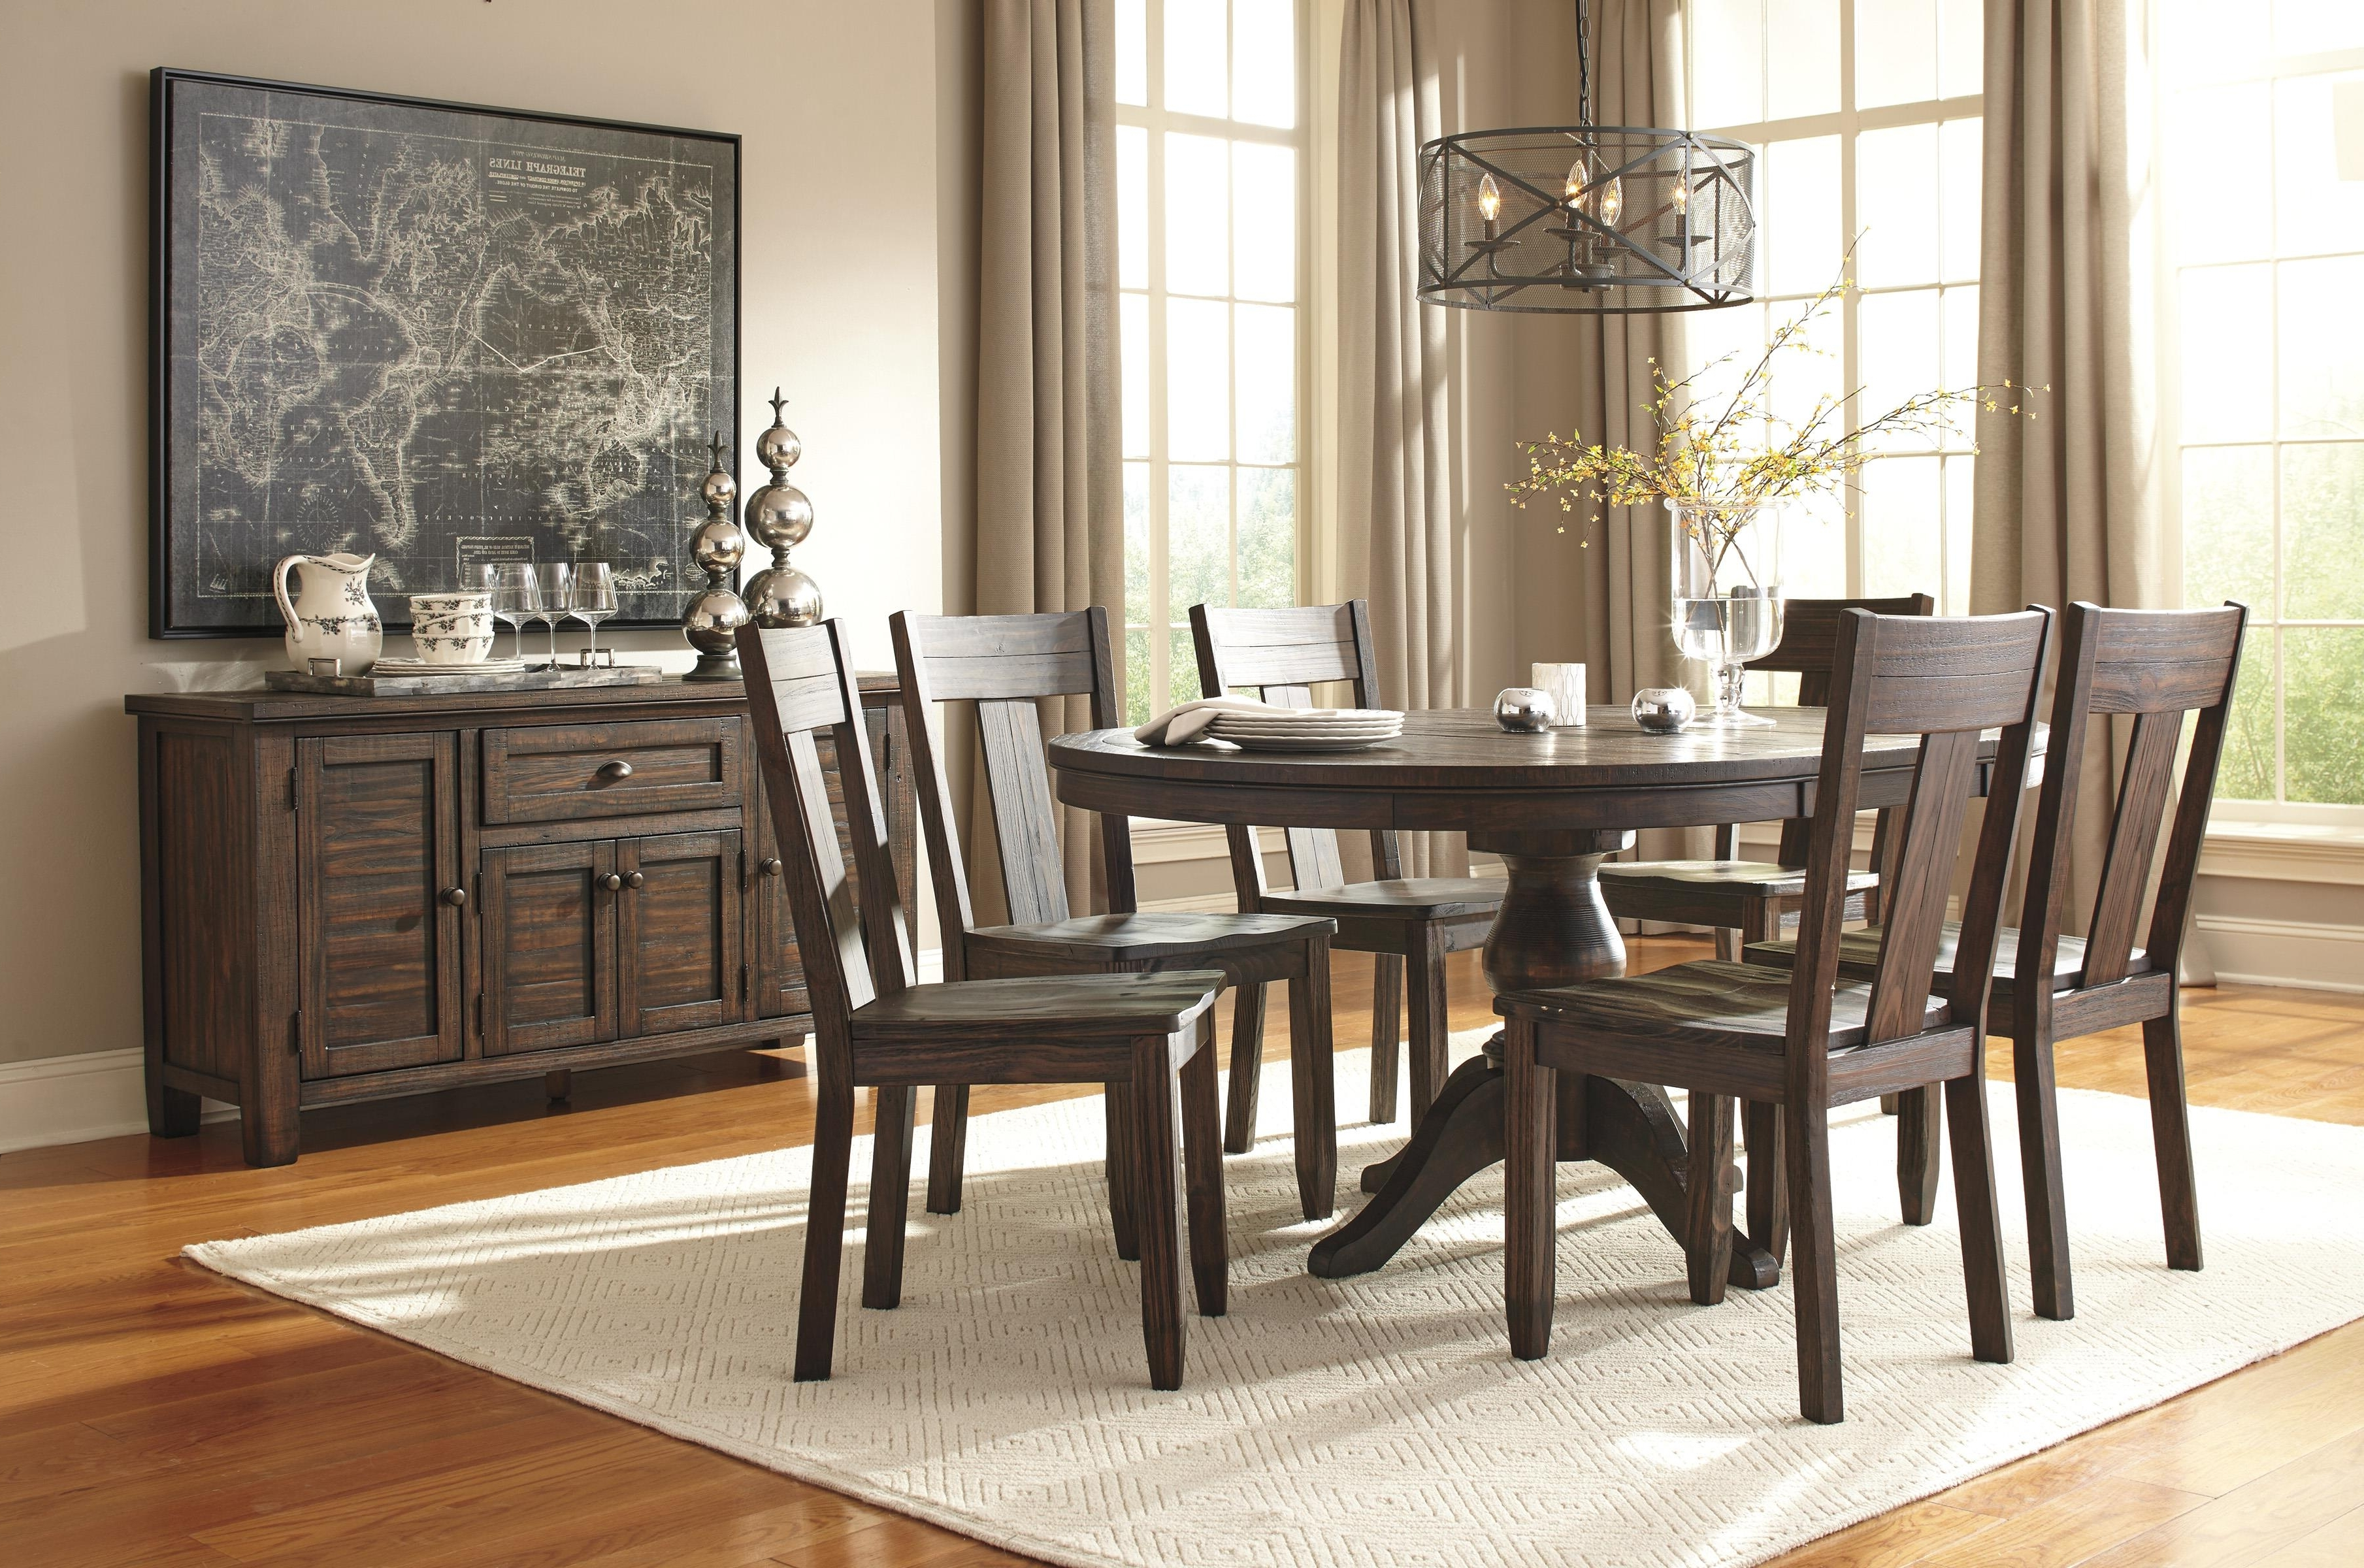 7 Piece Oval Dining Table Set With Wood Seat Side Chairs Inside Famous Craftsman 7 Piece Rectangle Extension Dining Sets With Side Chairs (View 8 of 25)